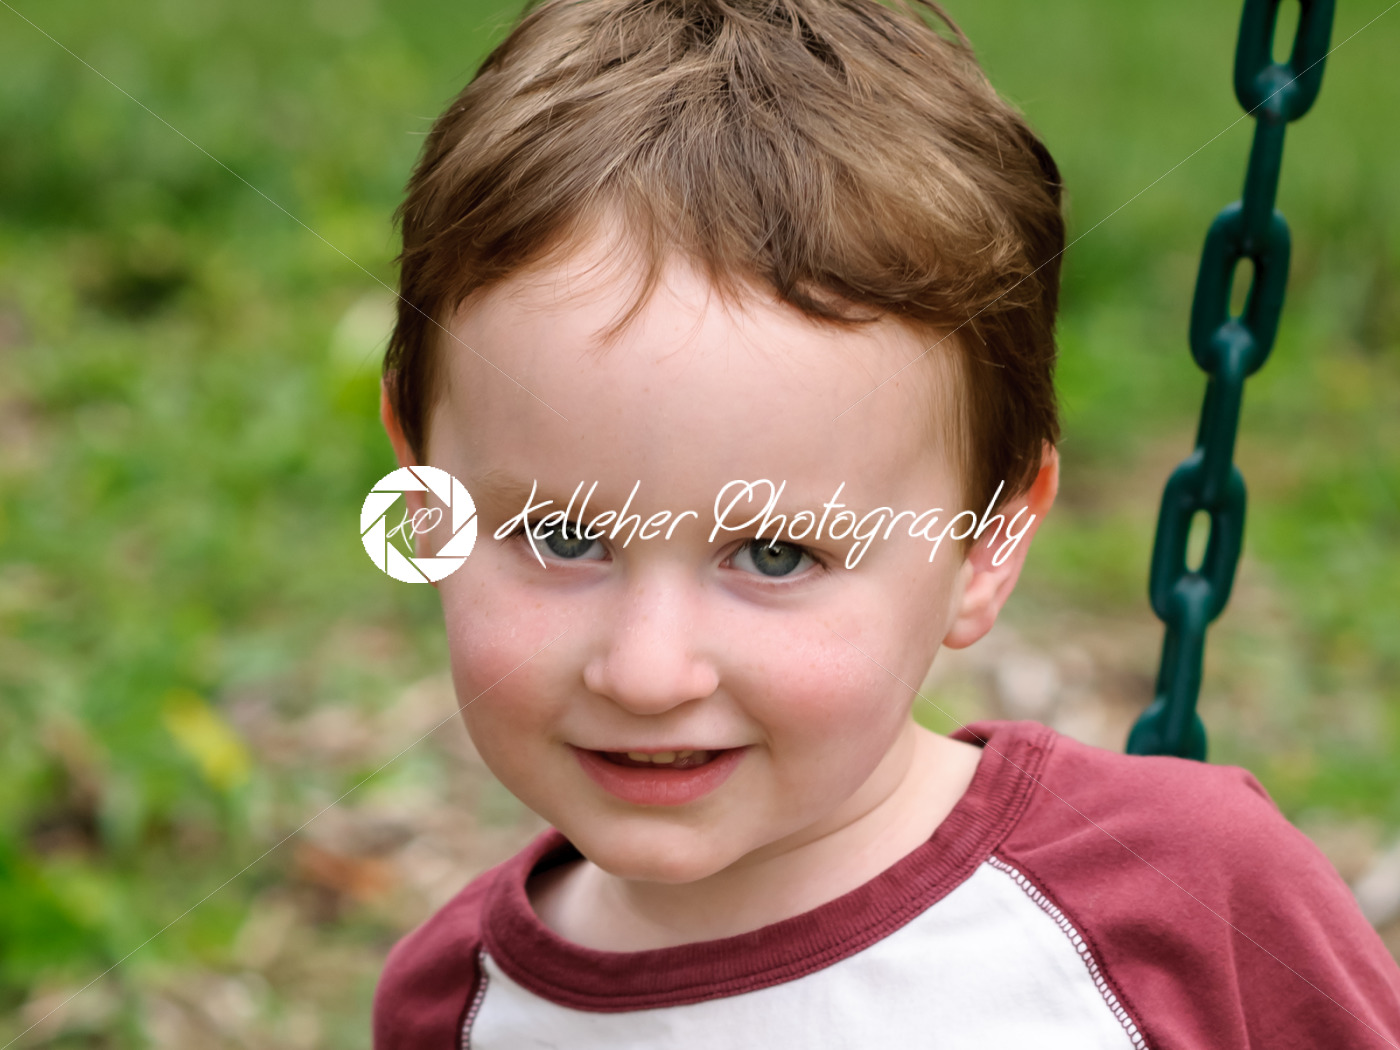 Young boy having fun on a swing - Kelleher Photography Store